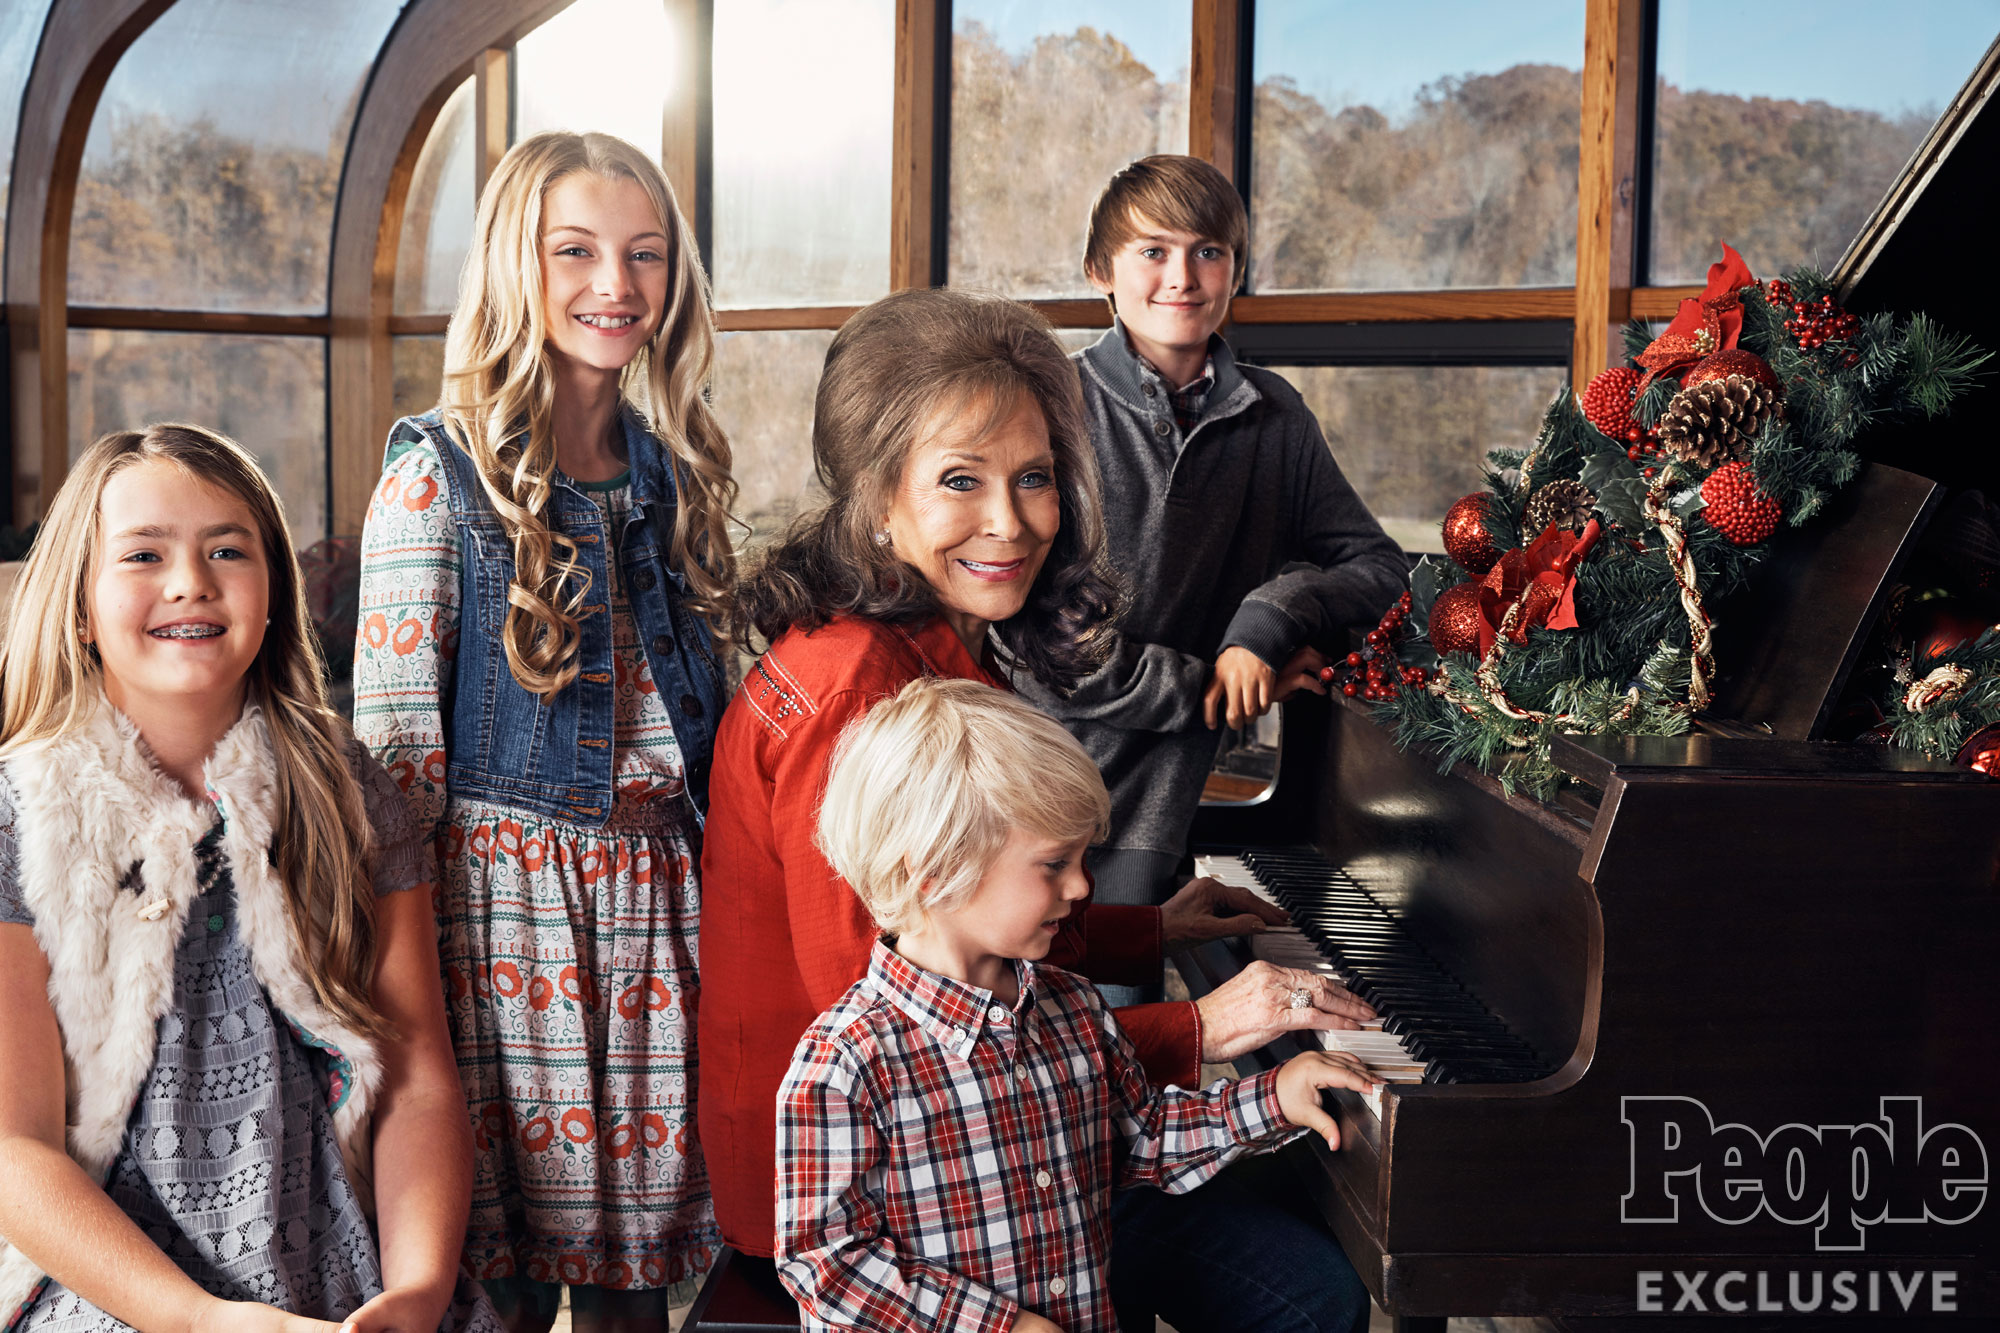 Lorerra Lynn at home with her family from left: Emma Braun, Emily Lynn, Loretta Lynn, Addison Braun and in foreground Baylor Braun Date: 11/16/16 Location: @ home in Hurricane Mills, TN